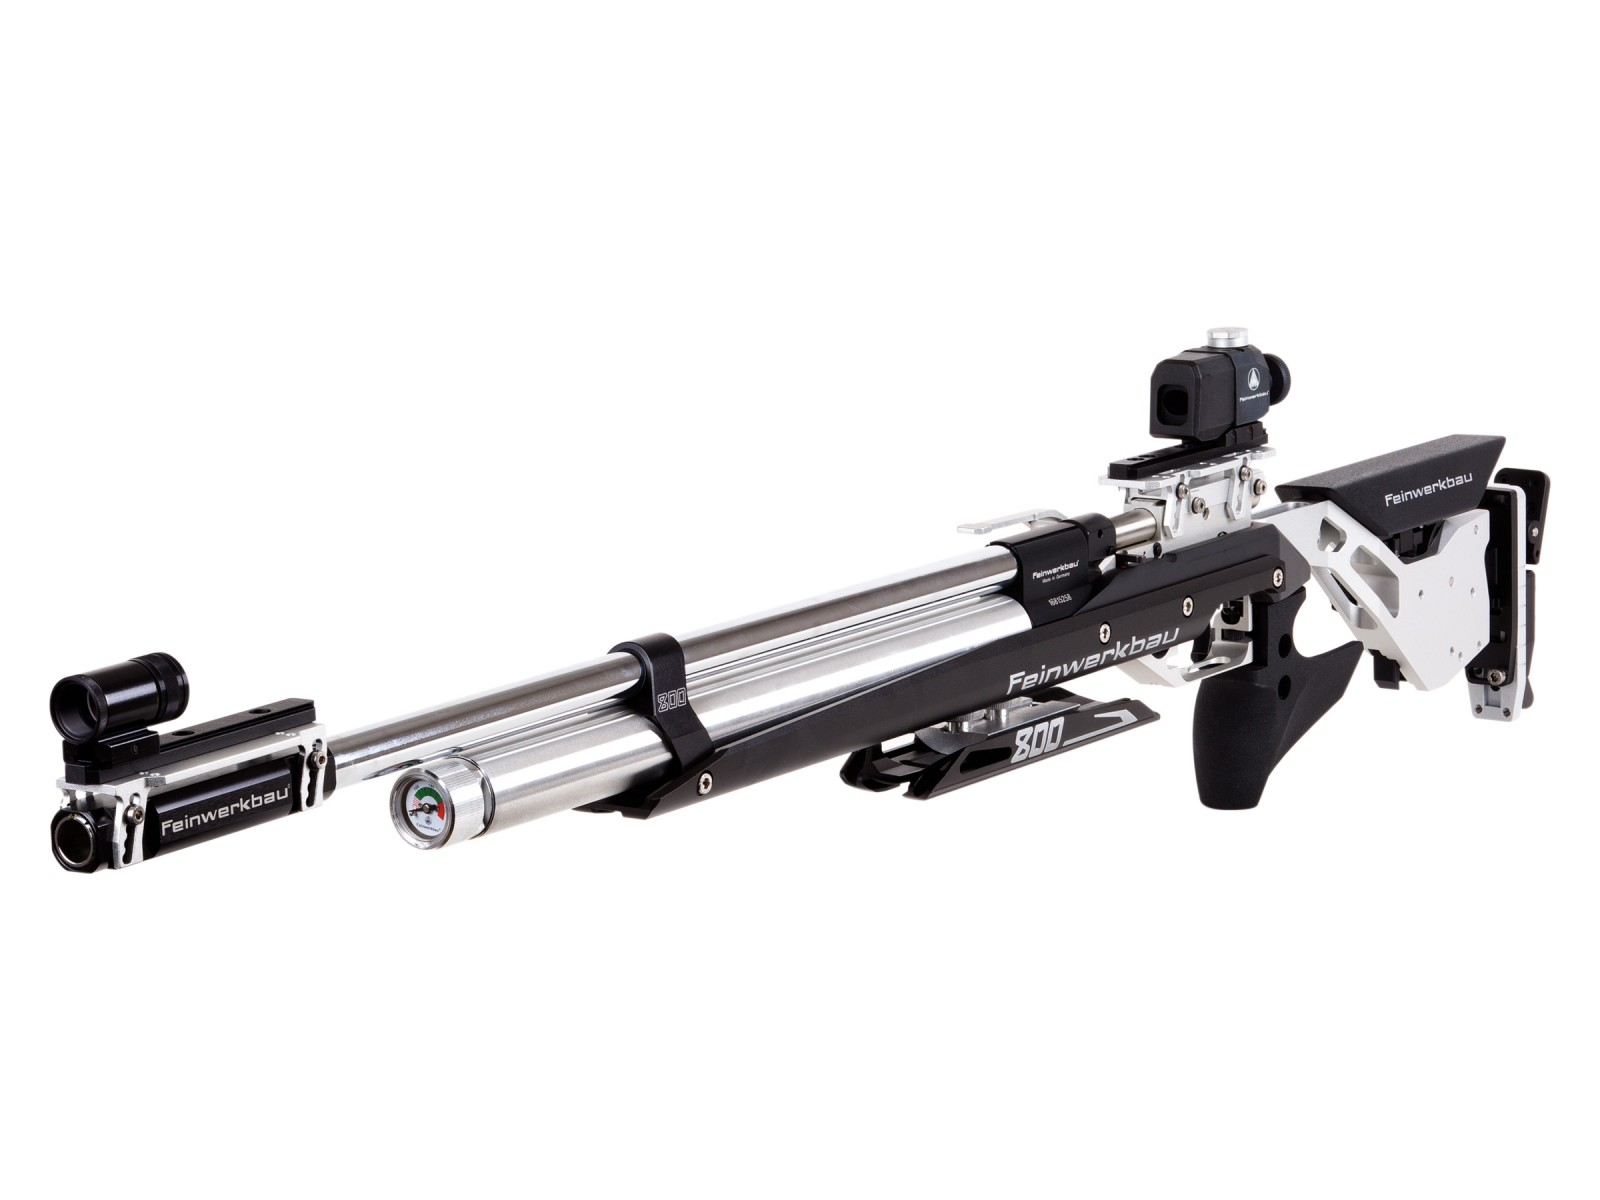 Feinwerkbau 800 ALU Air Rifle, Black